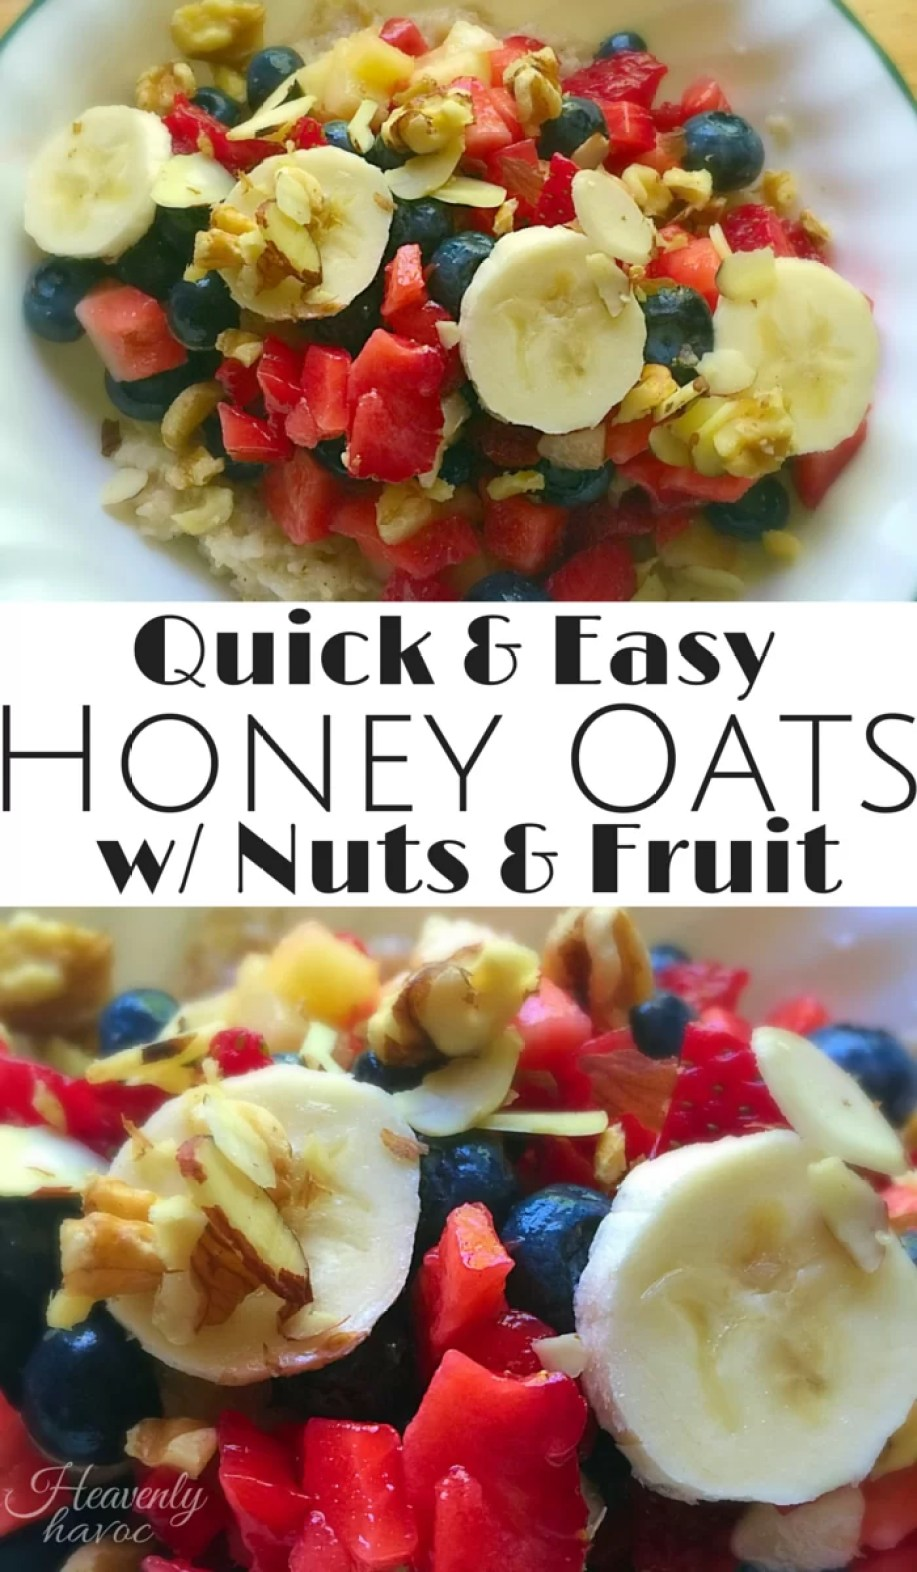 Such a beautiful and healthy way to start my day! Packed with protein, healthy fats, and antioxidants. The best part...this frugal breakfast is QUICK and EASY!